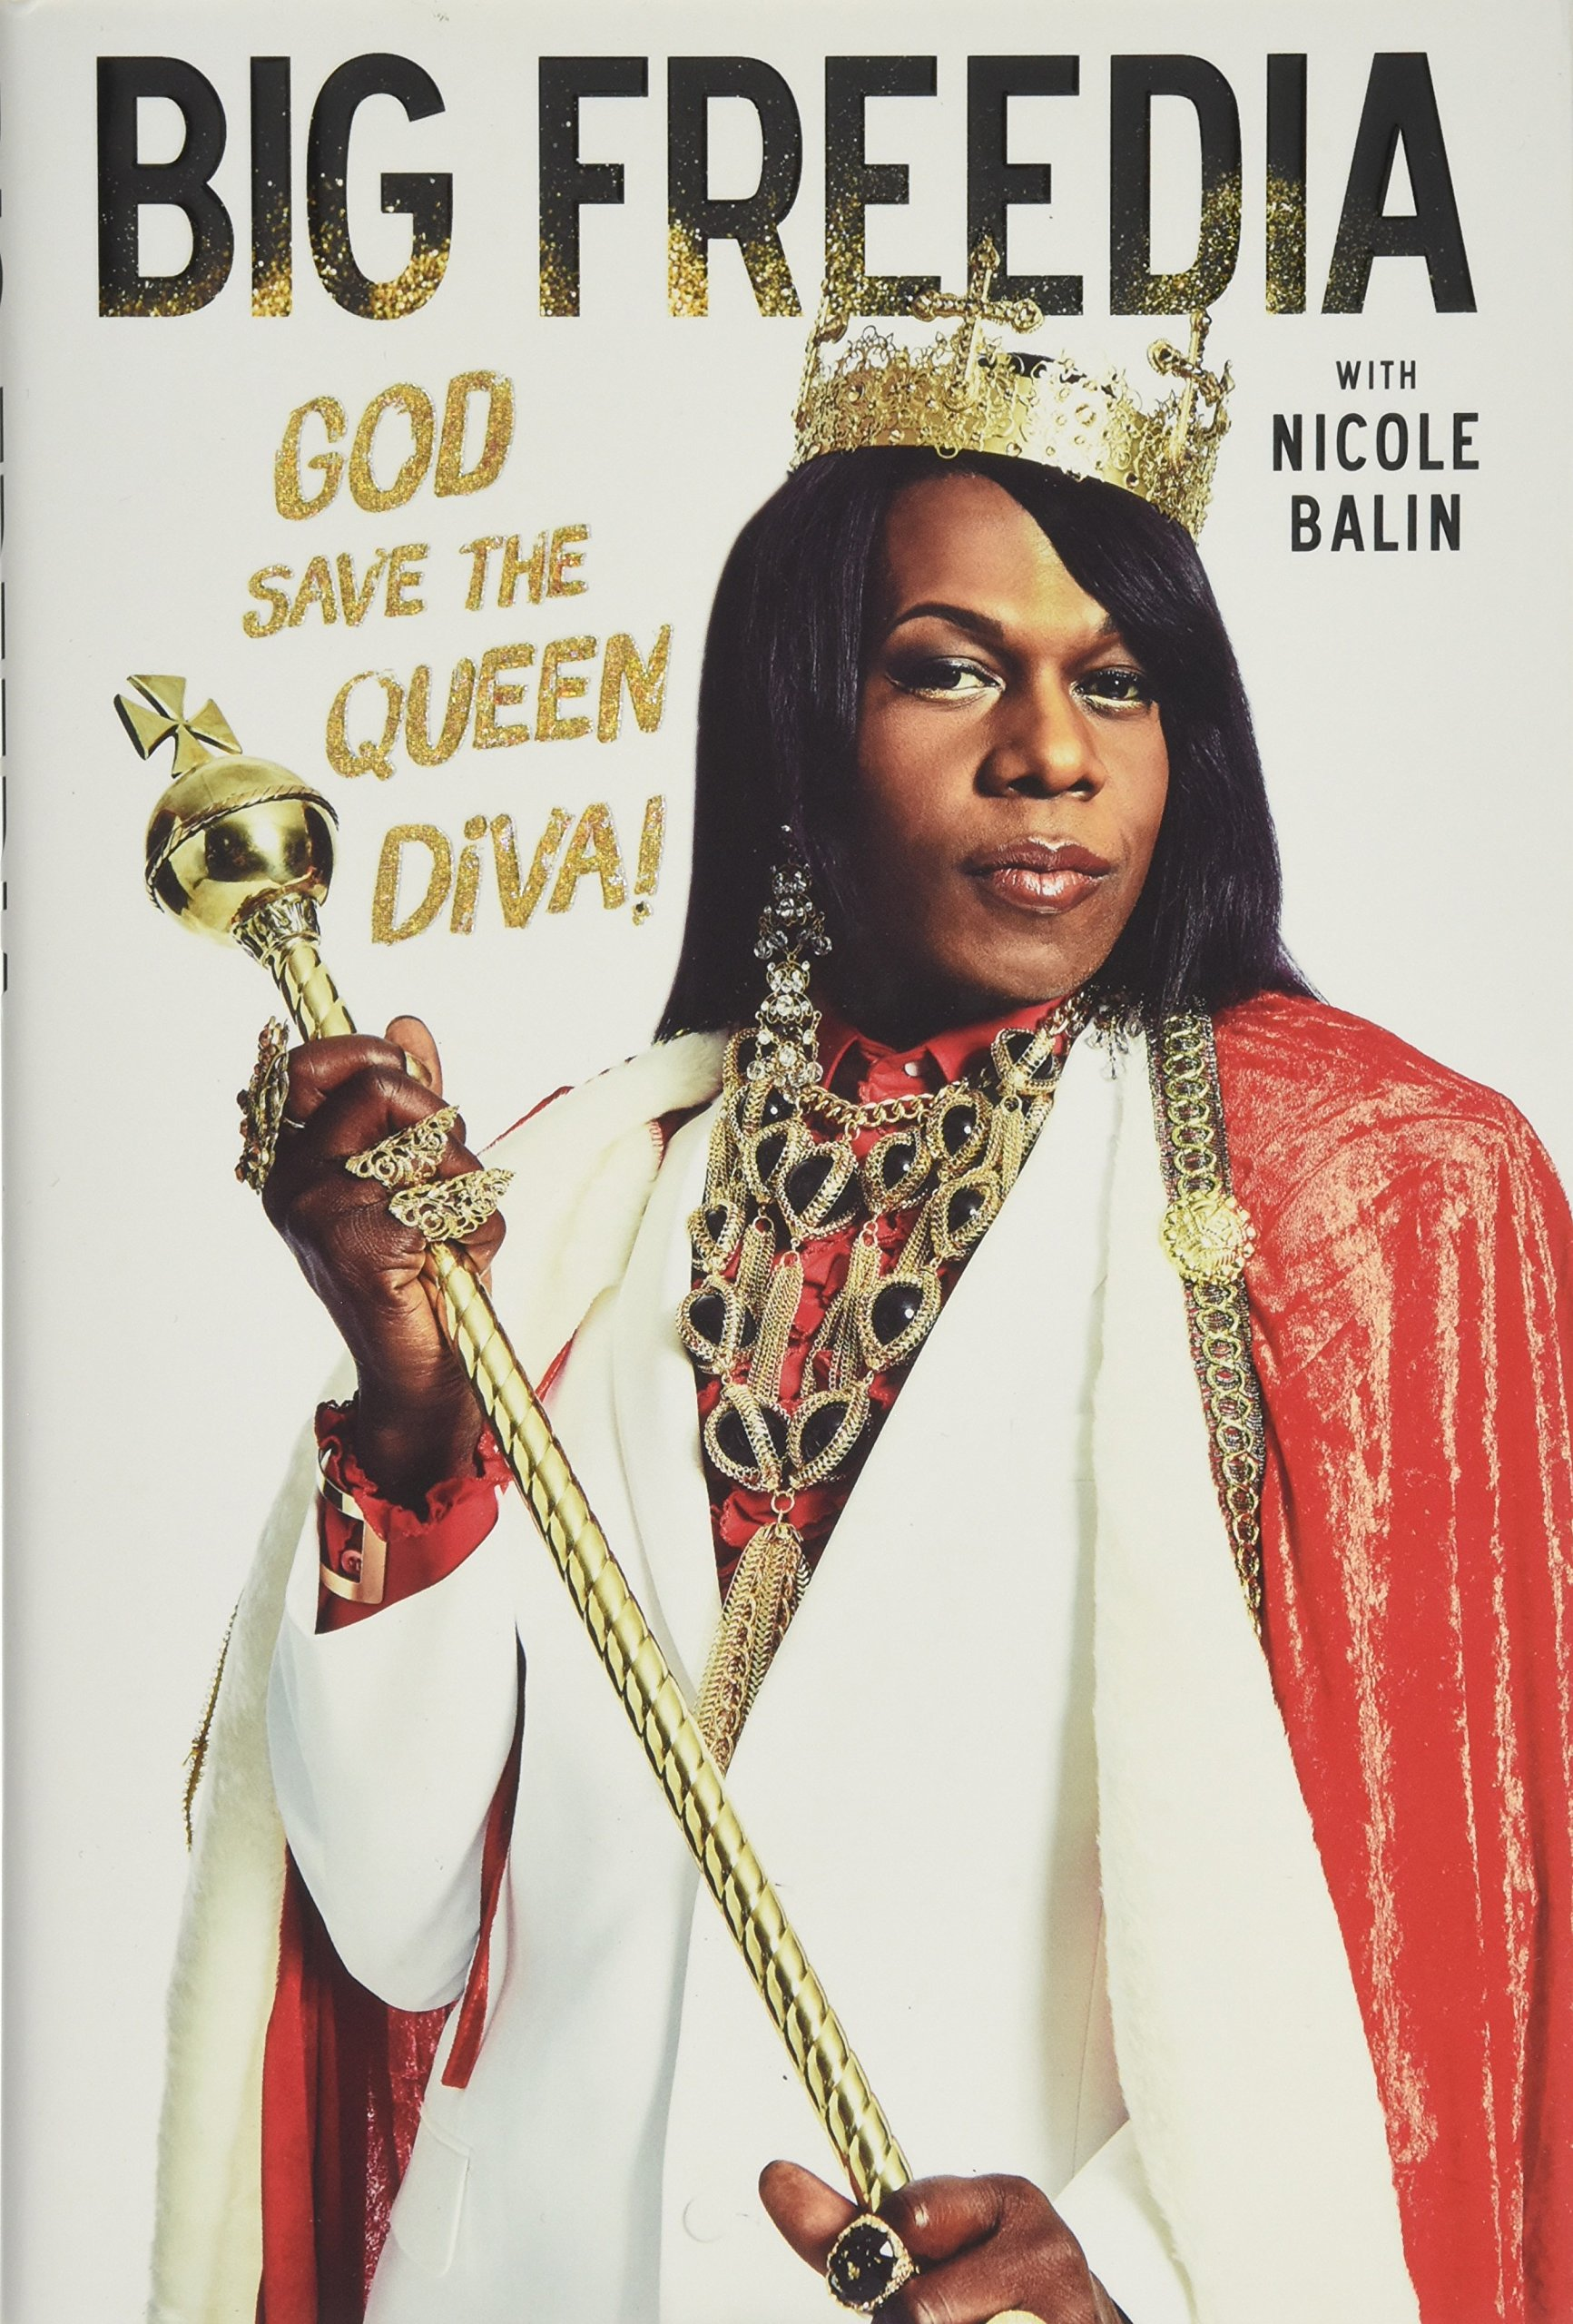 Big Freedia's God Save the Queen Cover Art